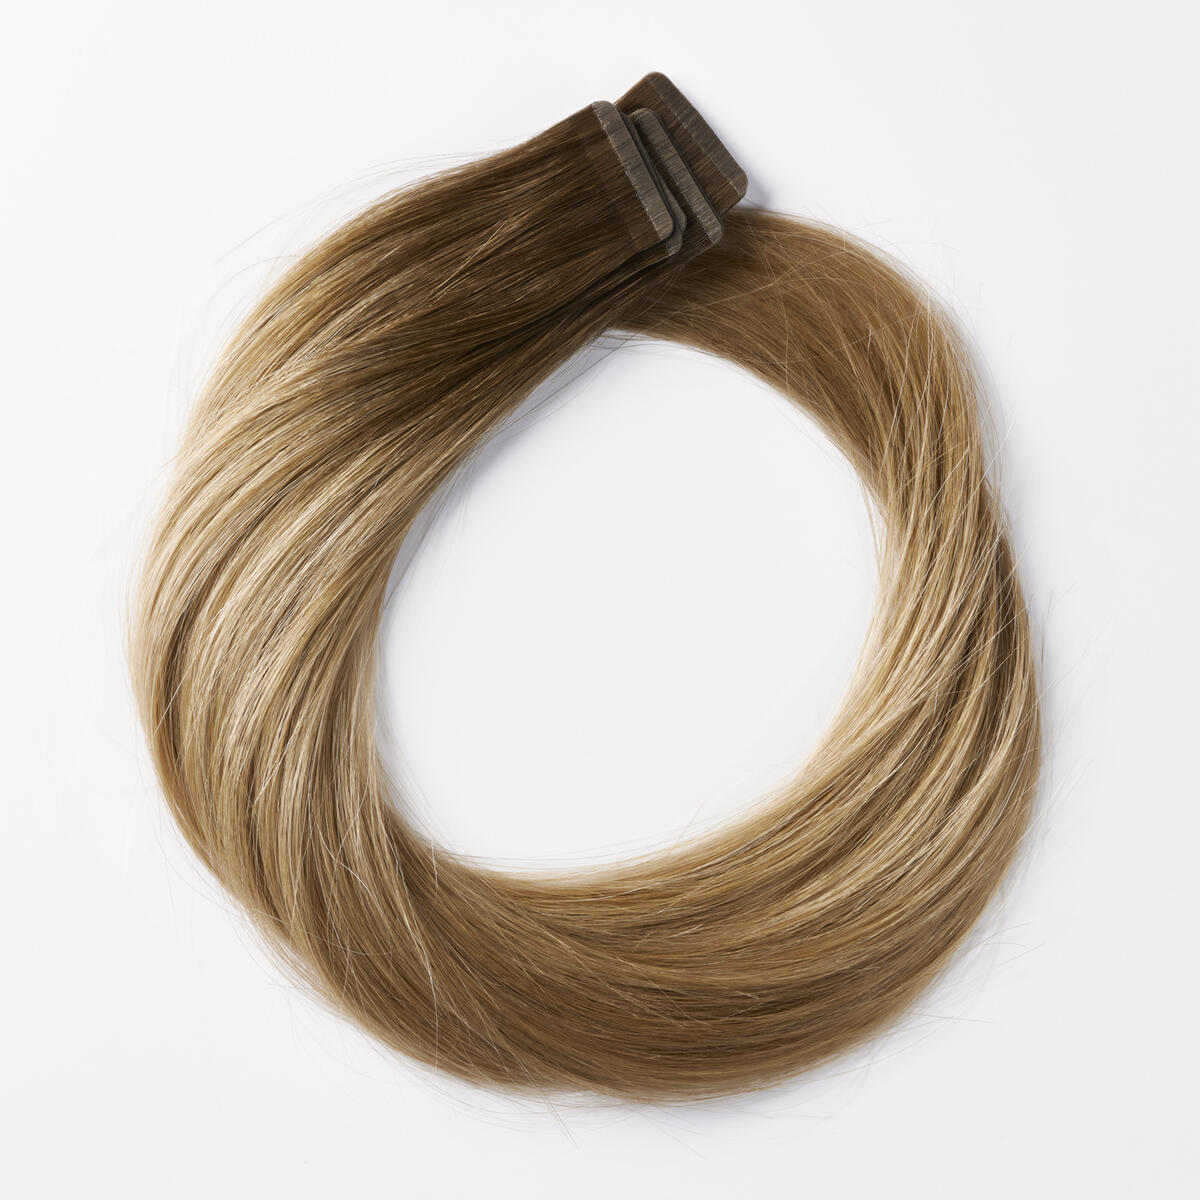 Sleek Tape Extension C2.0/7.4 Caramel Bronde ColorMelt 45 cm